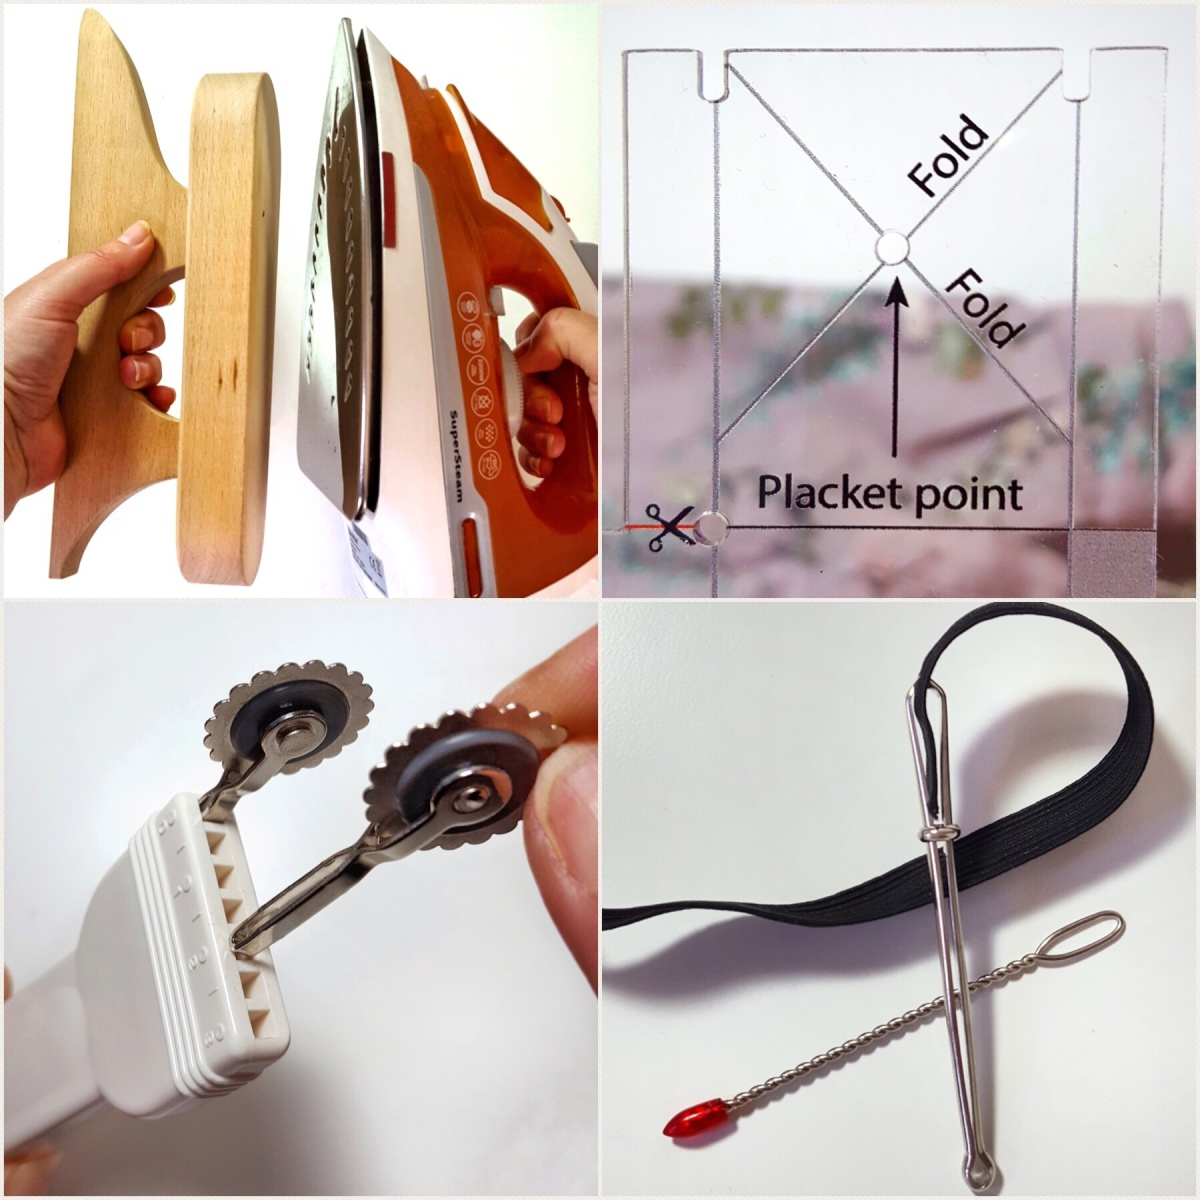 Inspector Gadget Strikes Again...A Roundup of my Latest Fave Sewing Tools, Gadgets & Gizmos!